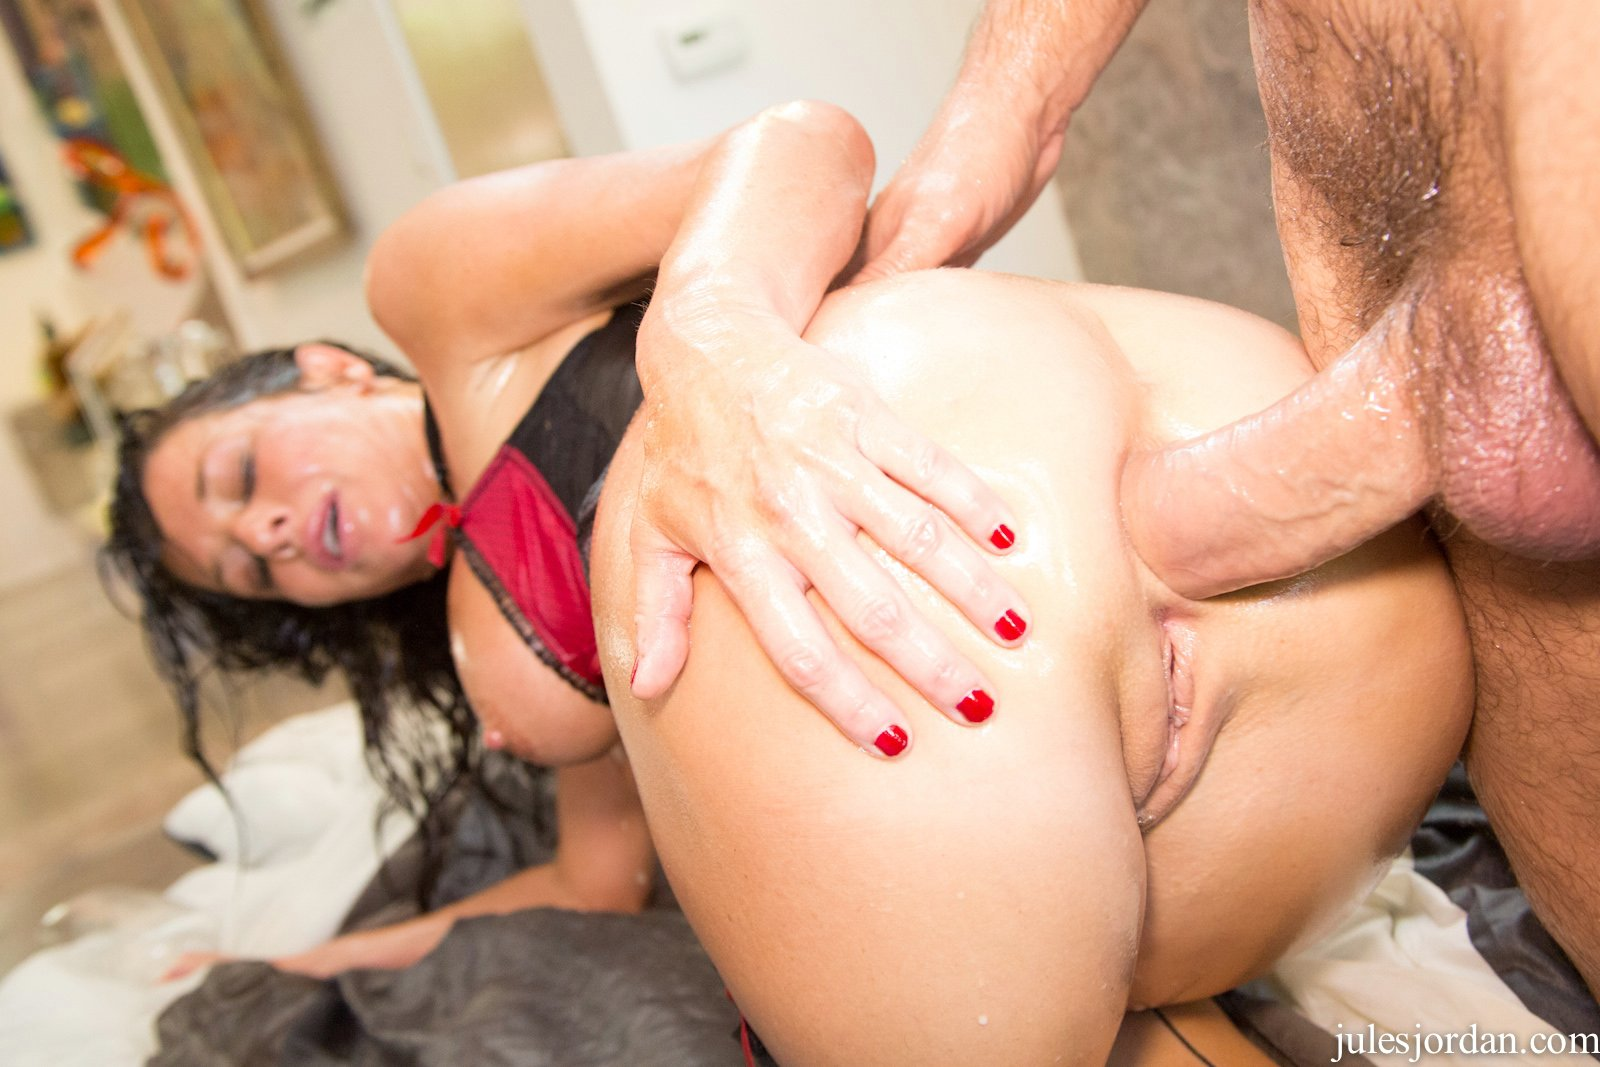 Veronica avluv gets fucked by the fuckbot for christmas